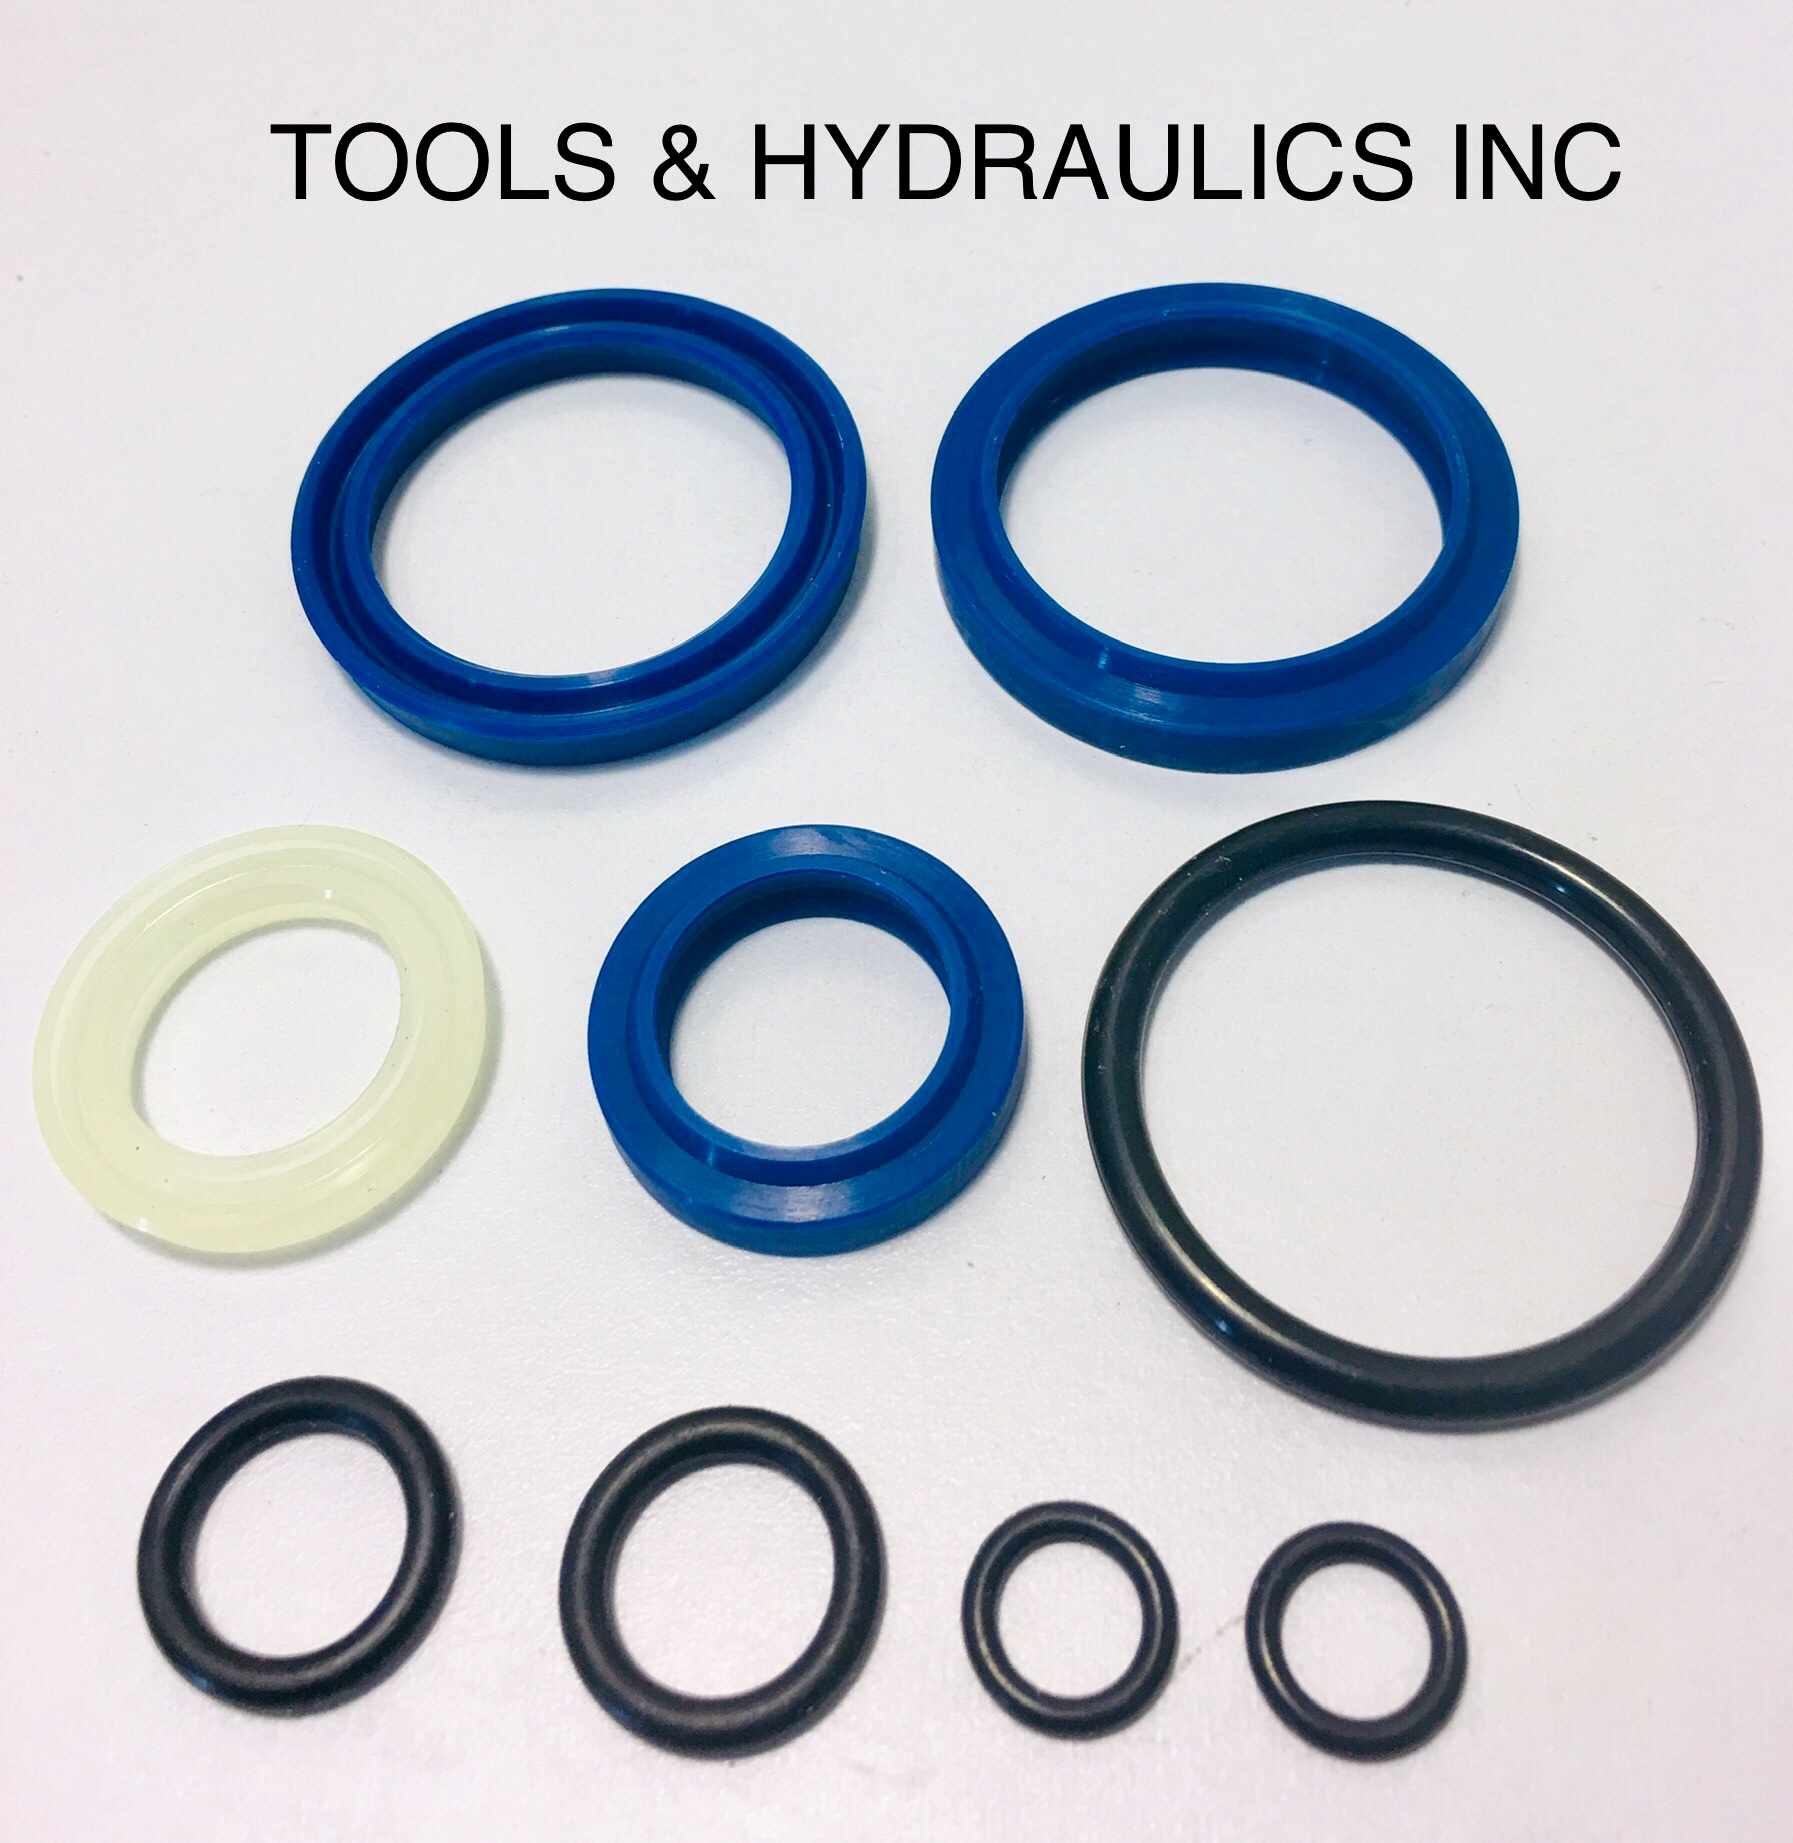 Jet Ptx2748 Seal Kit